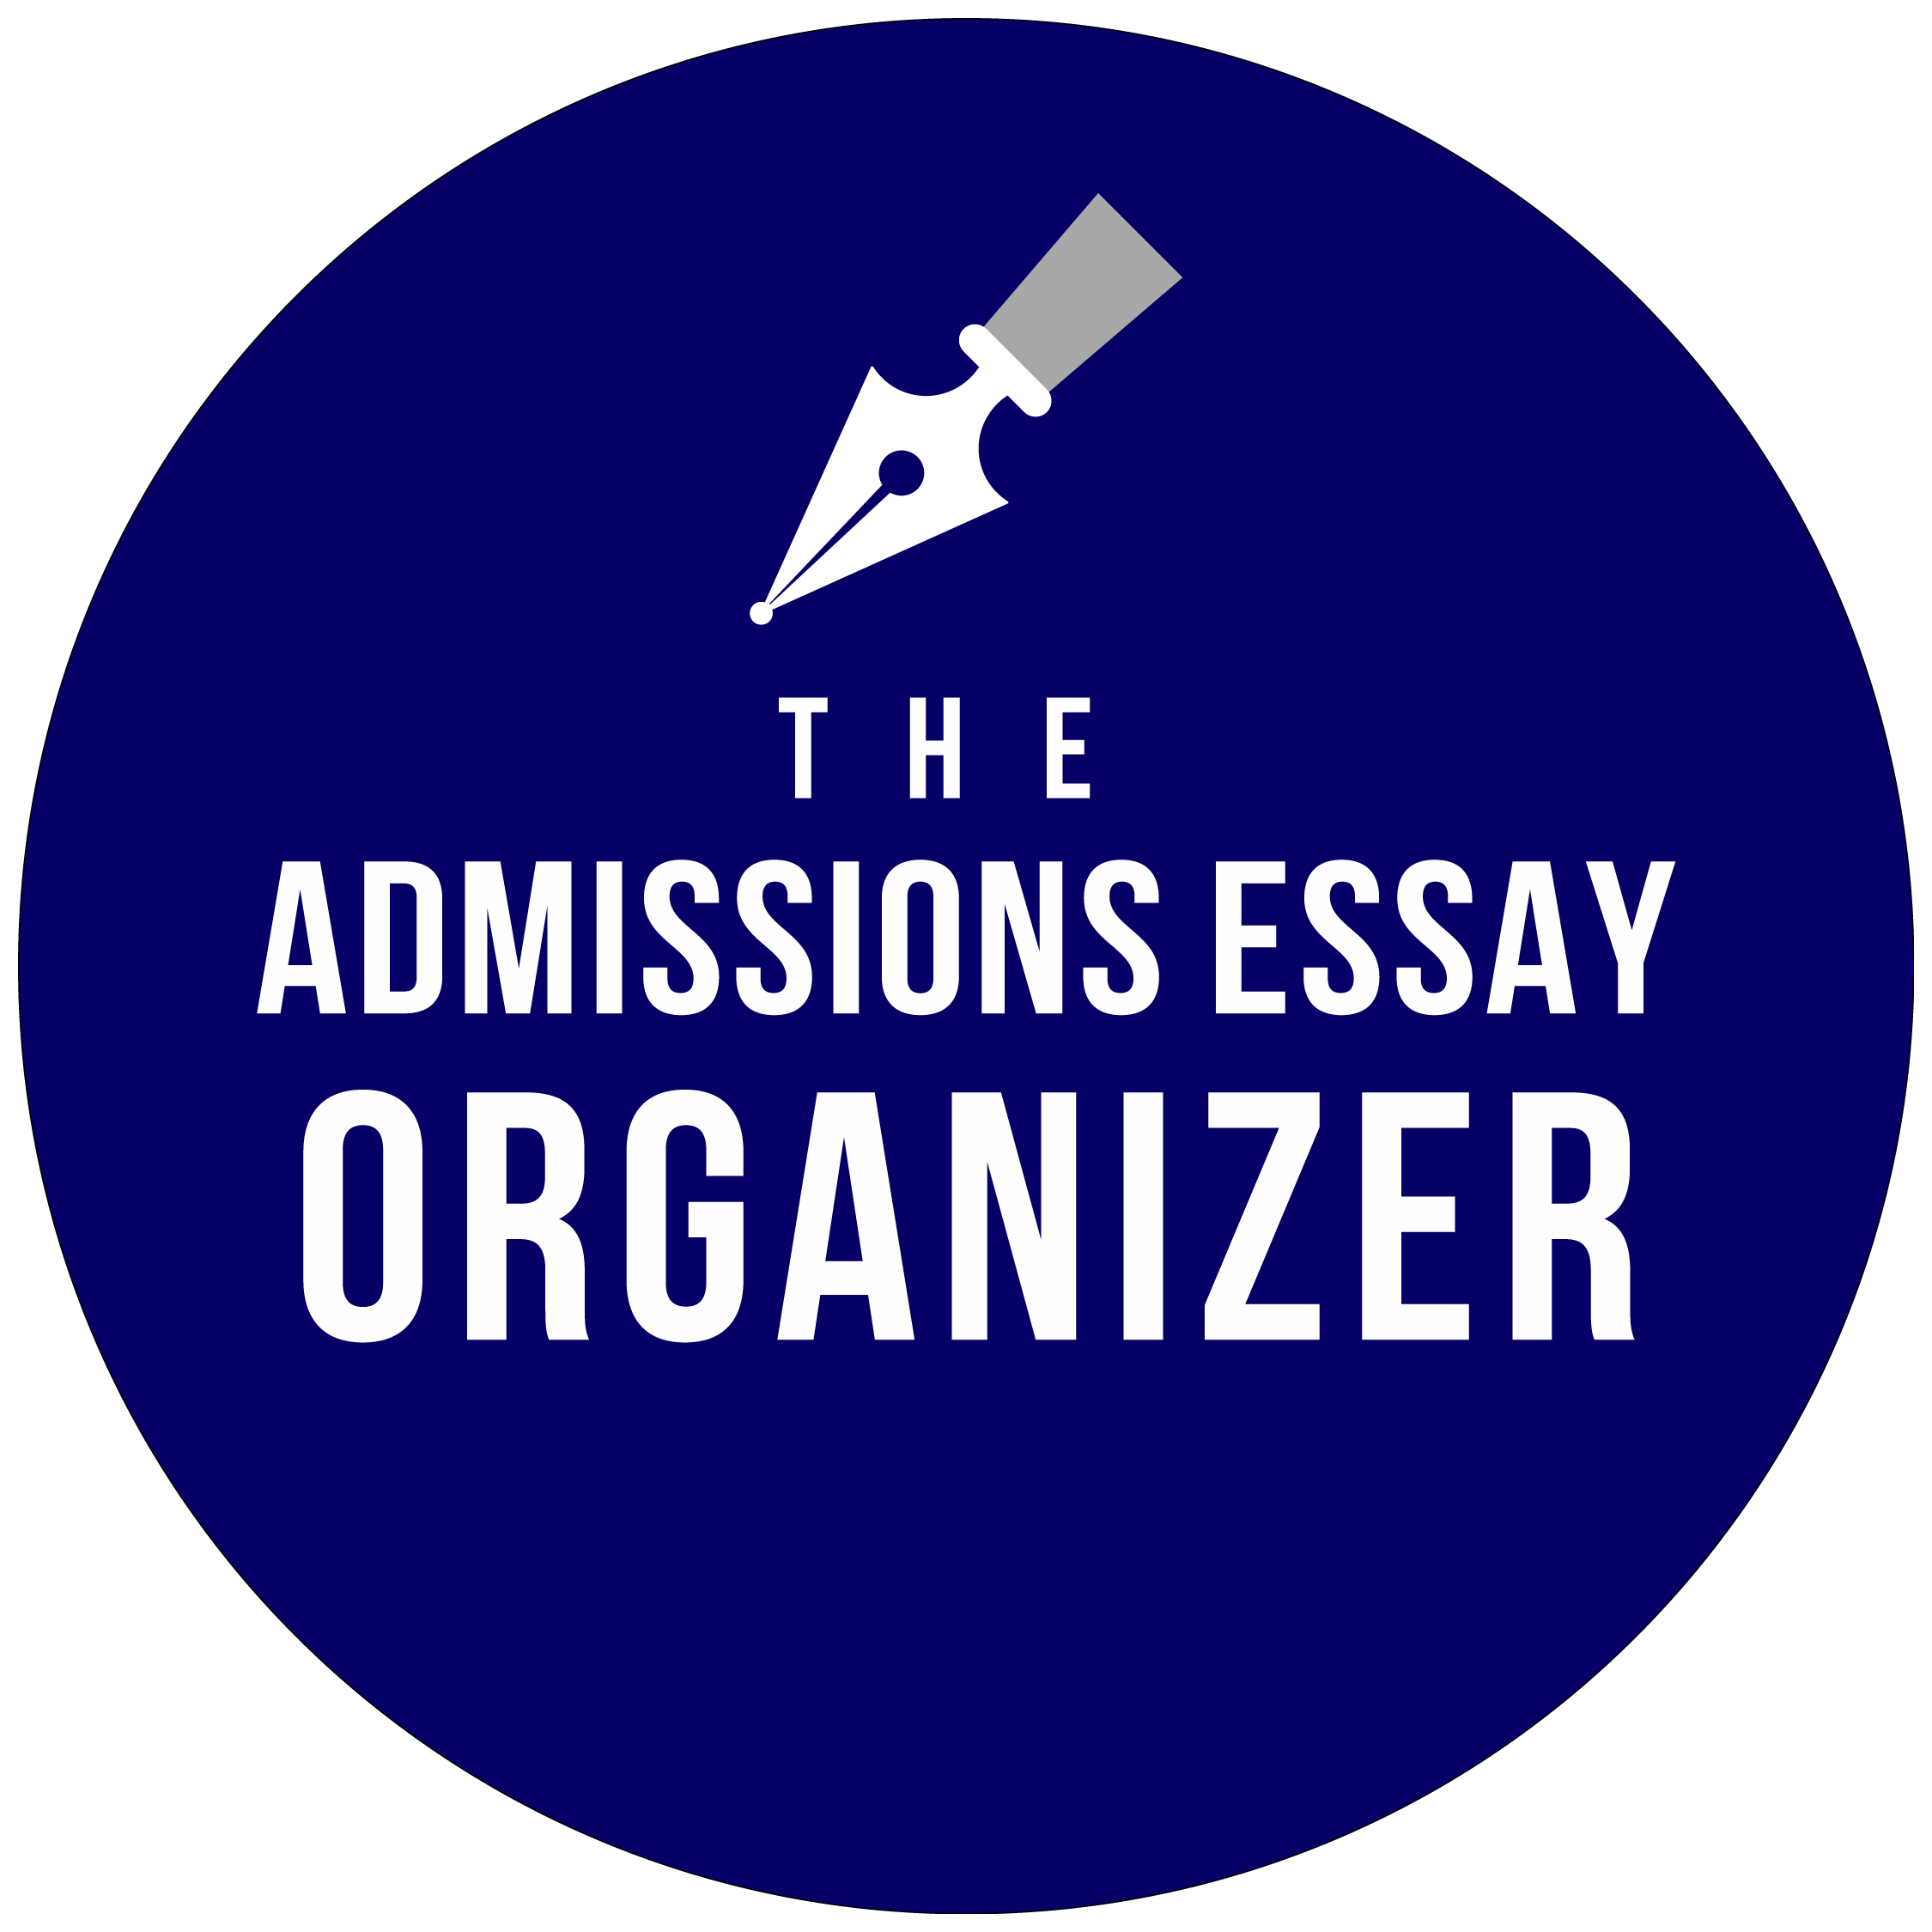 ESSAY ABOUT IS COLLEGE ADMISSION TOO COMPETITIVE